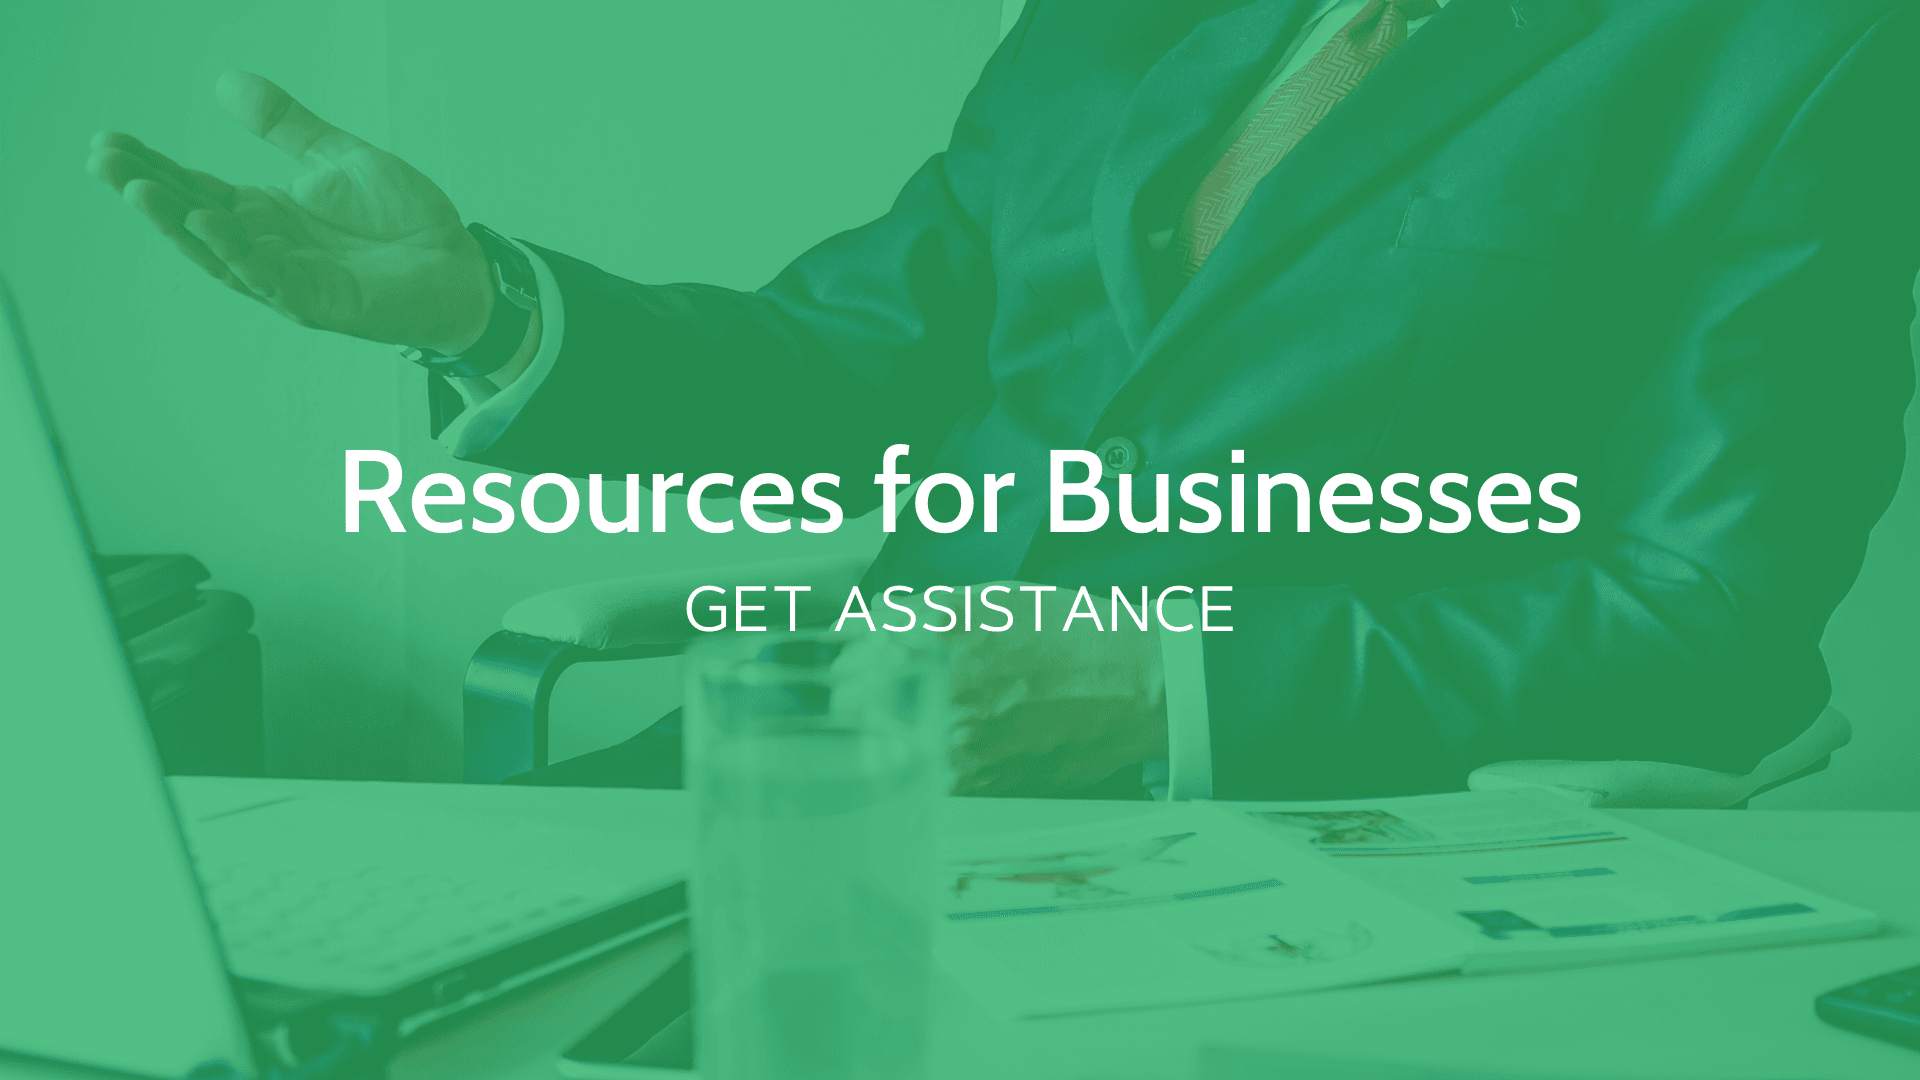 Resources for Businesses